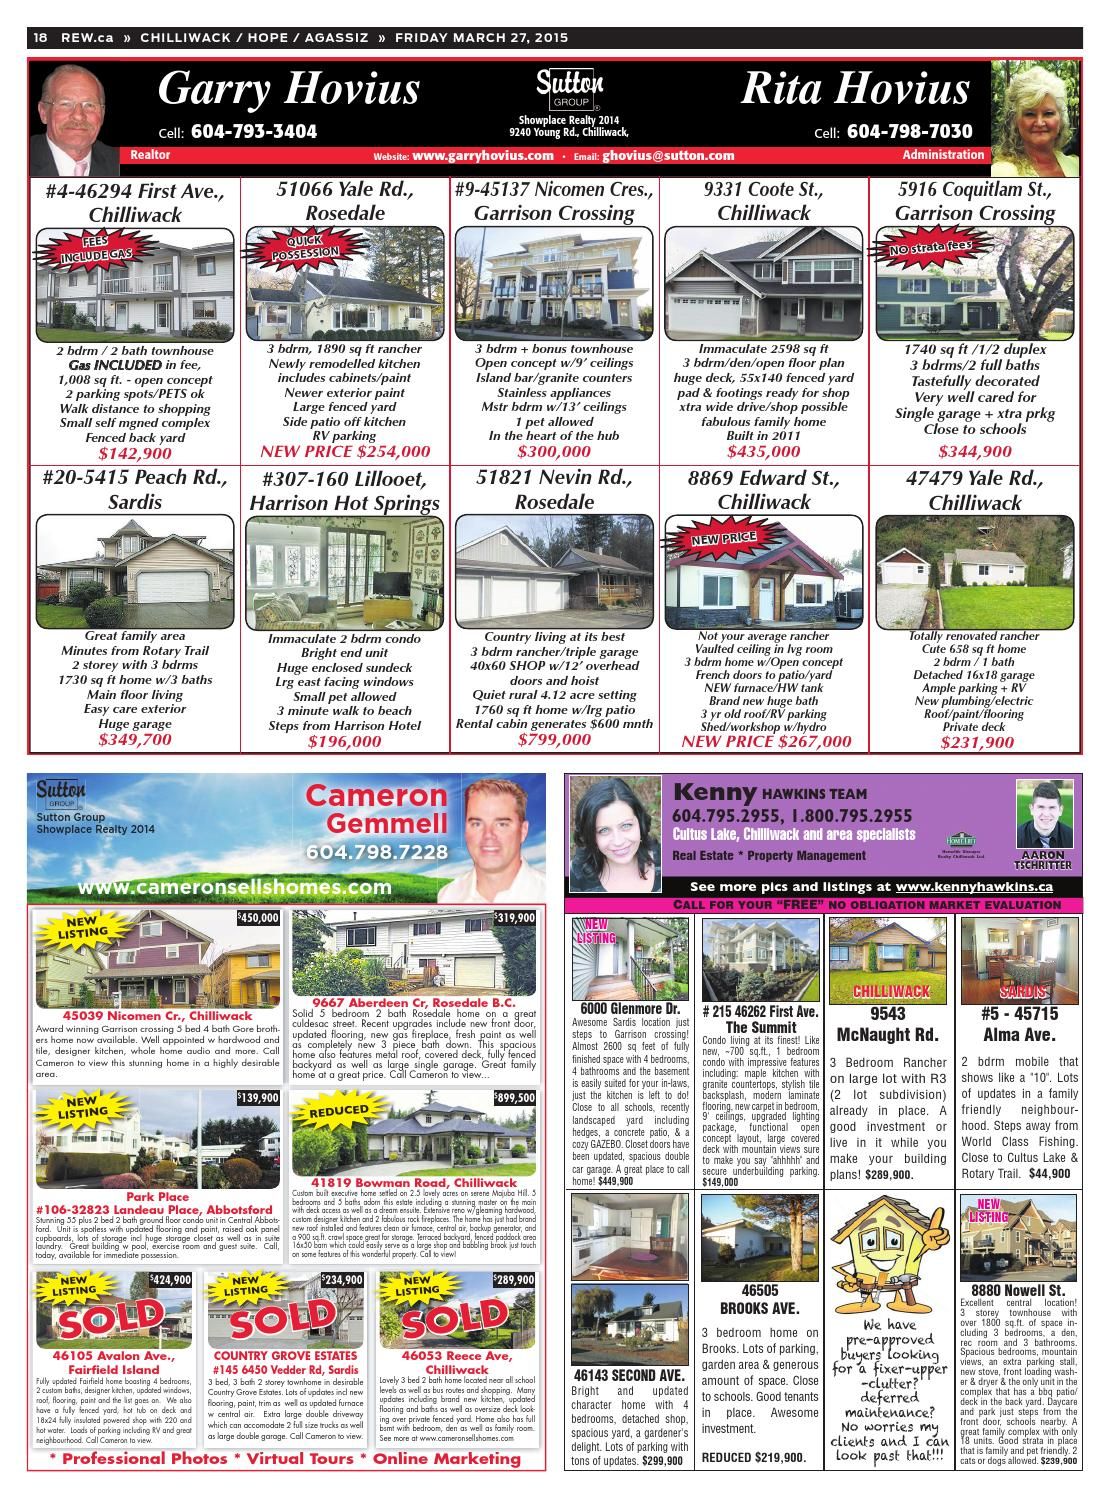 CHILLIWACK / HOPE / AGASSIZ Mar 27, 2015 Real Estate Weekly by Real